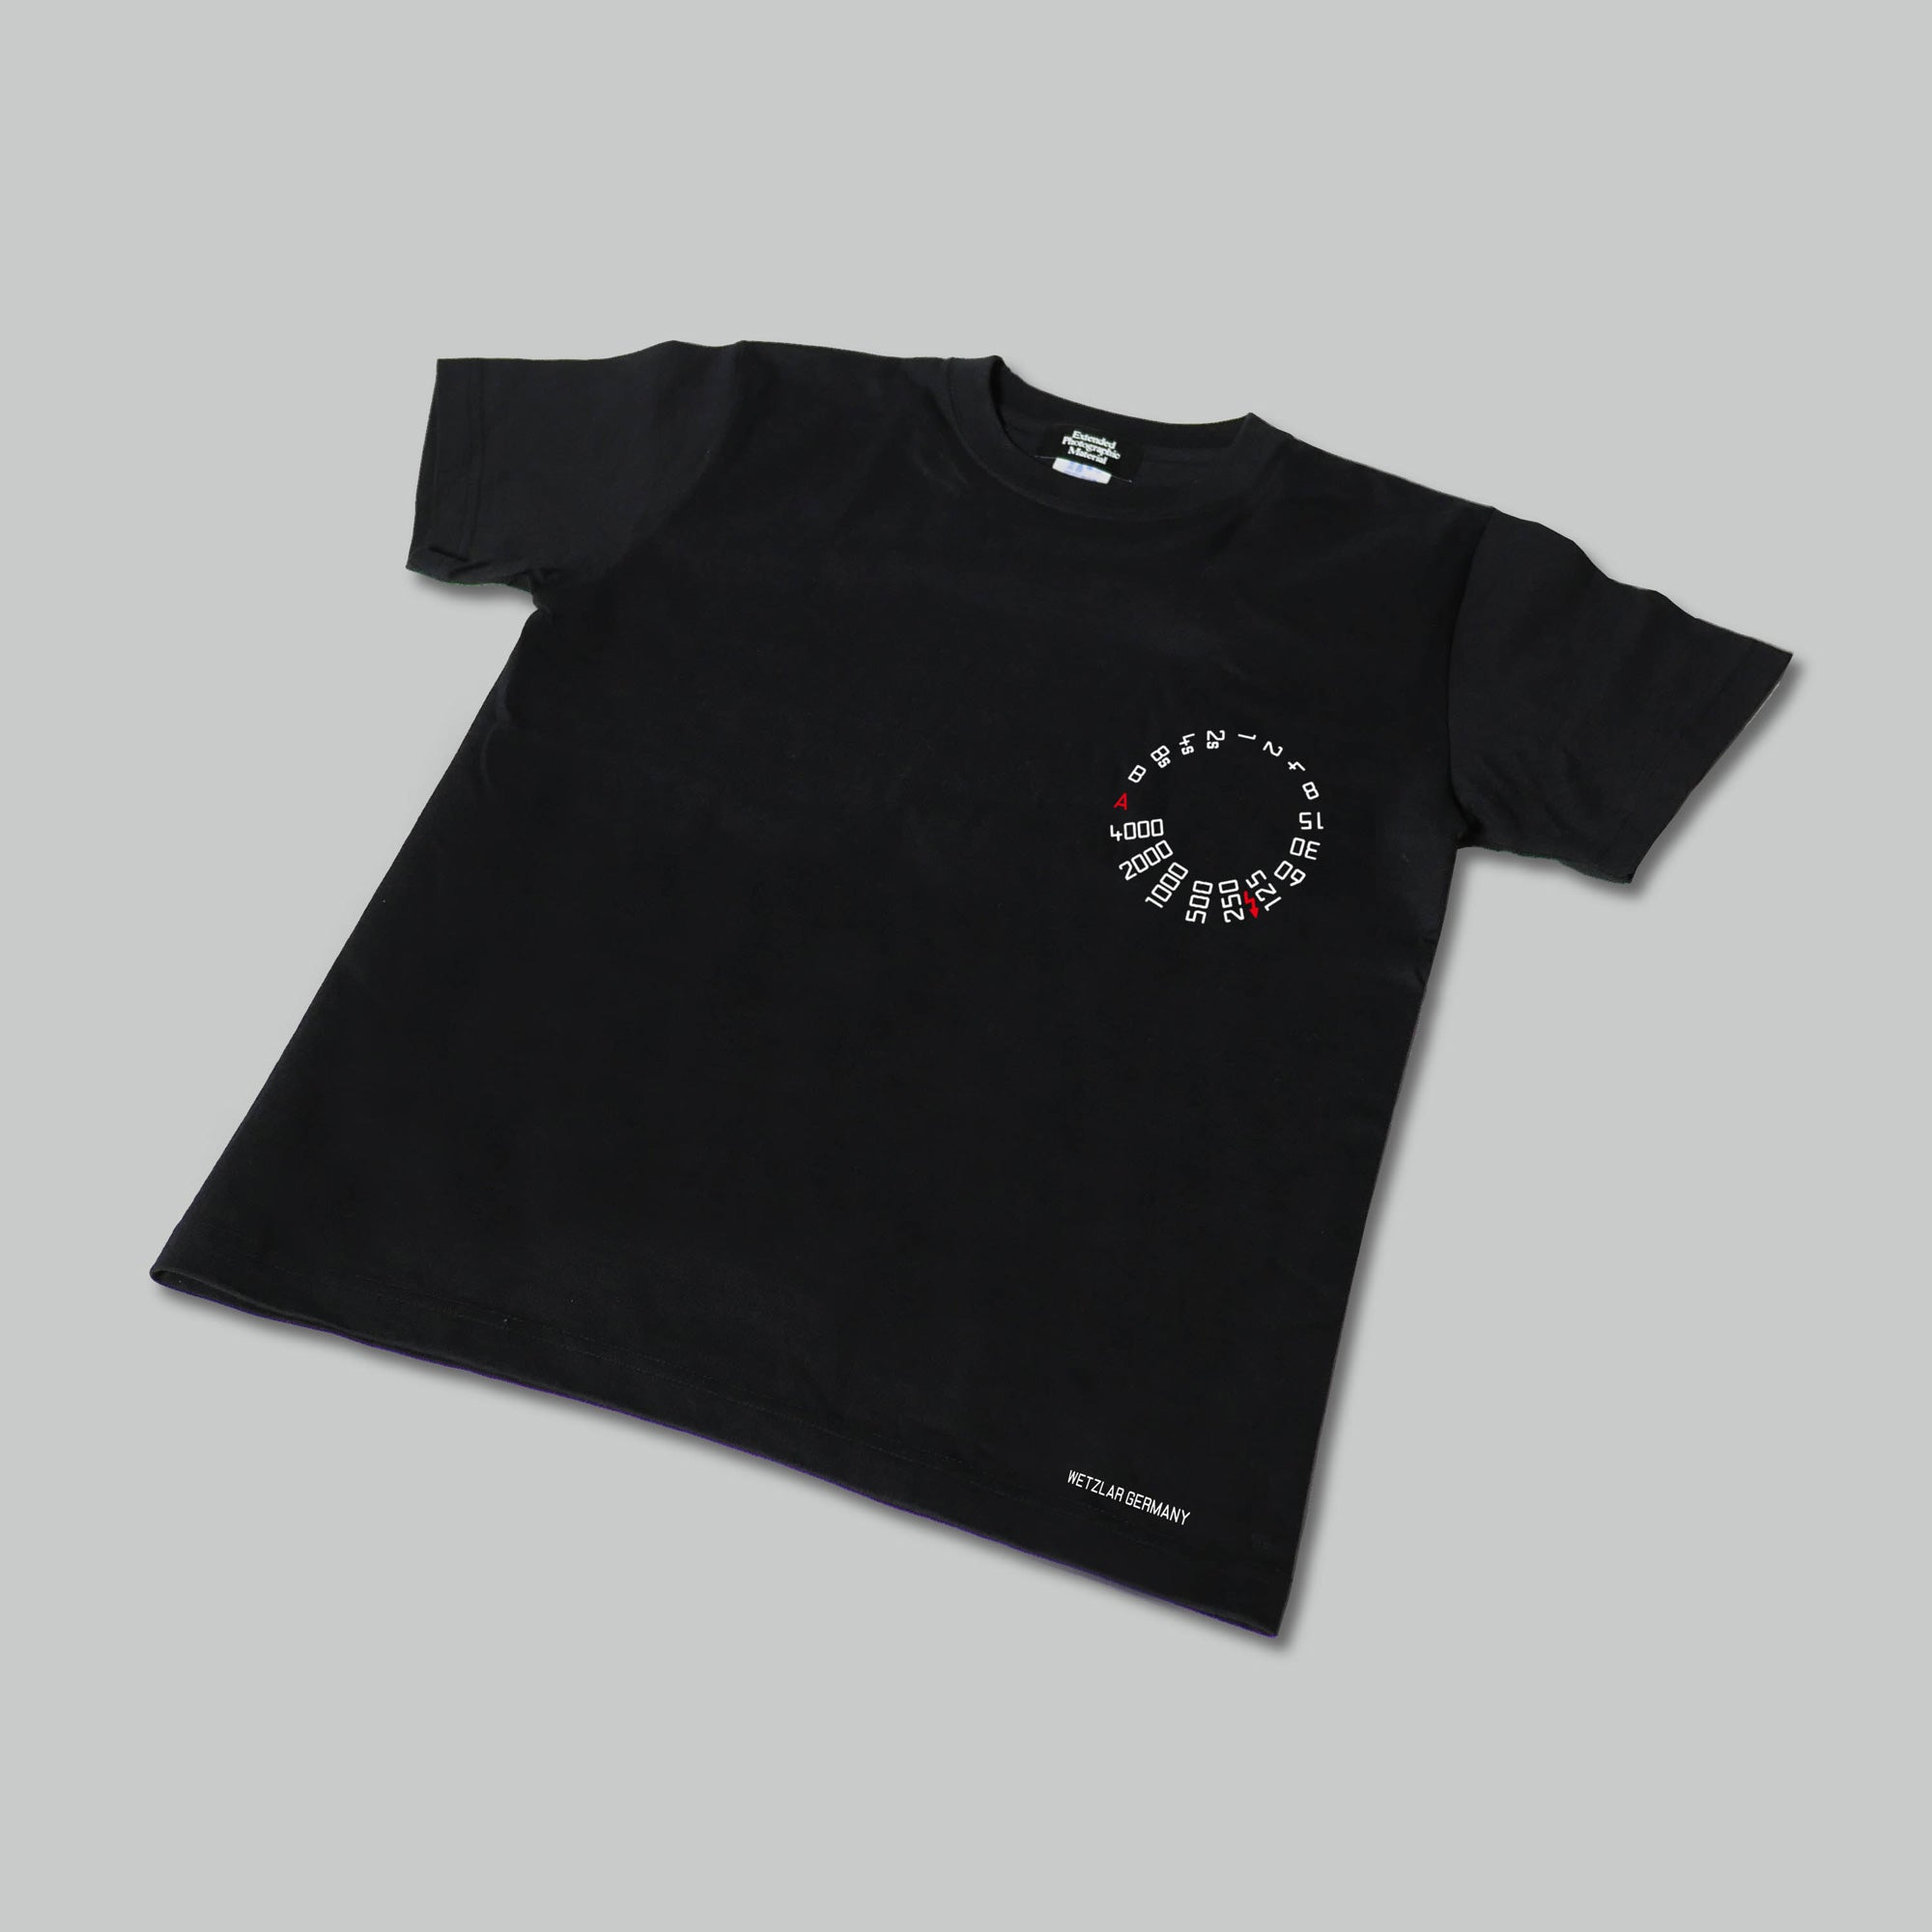 EPM SHUTTER SPEED DIAL TEE BLACK